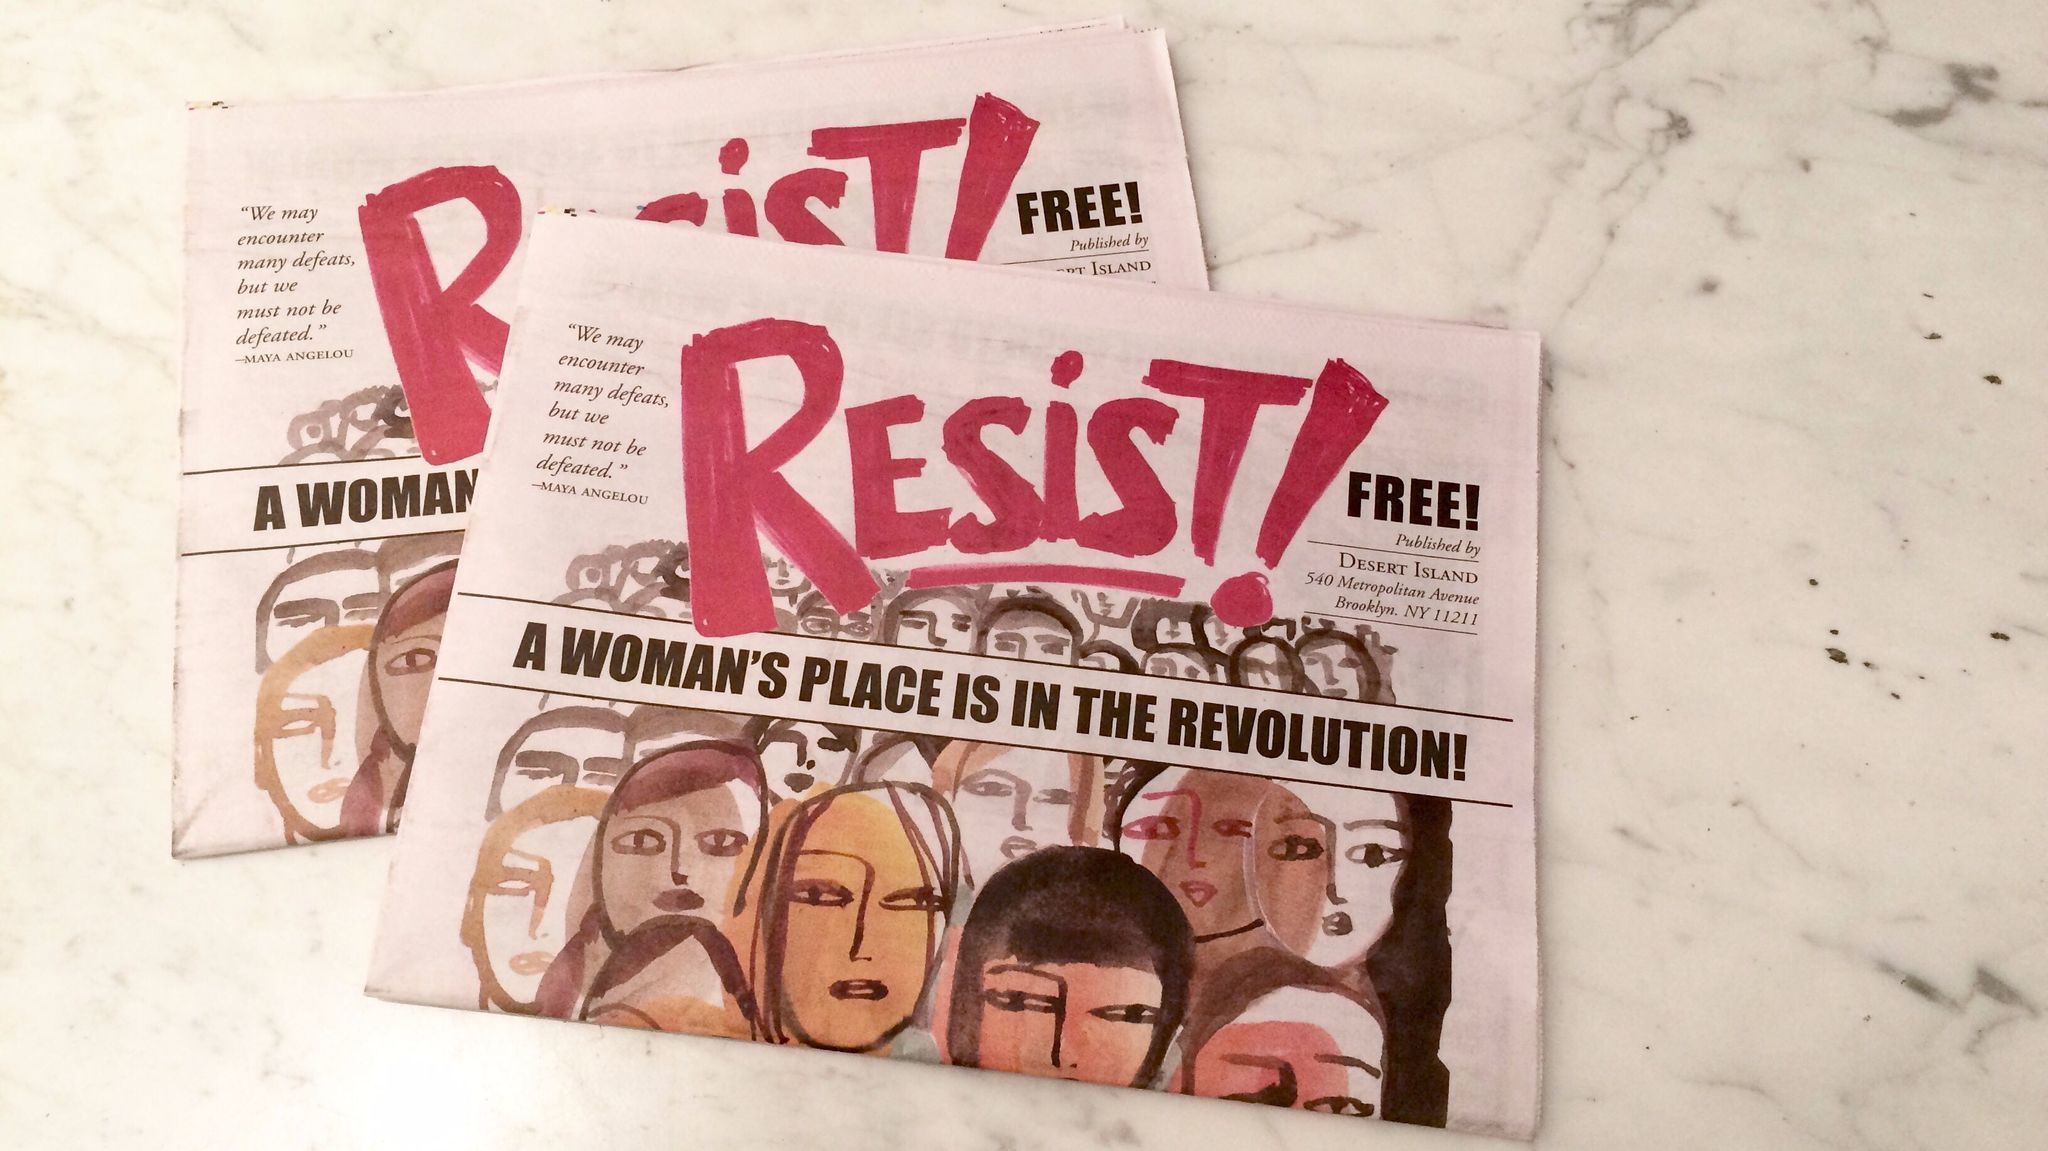 Artists' responses to President Trump have included this 40-page tabloid comic drawn by women. On Tuesday night, the artistic resistance moves to the stage. (Carolina Miranda / Los Angeles Times)